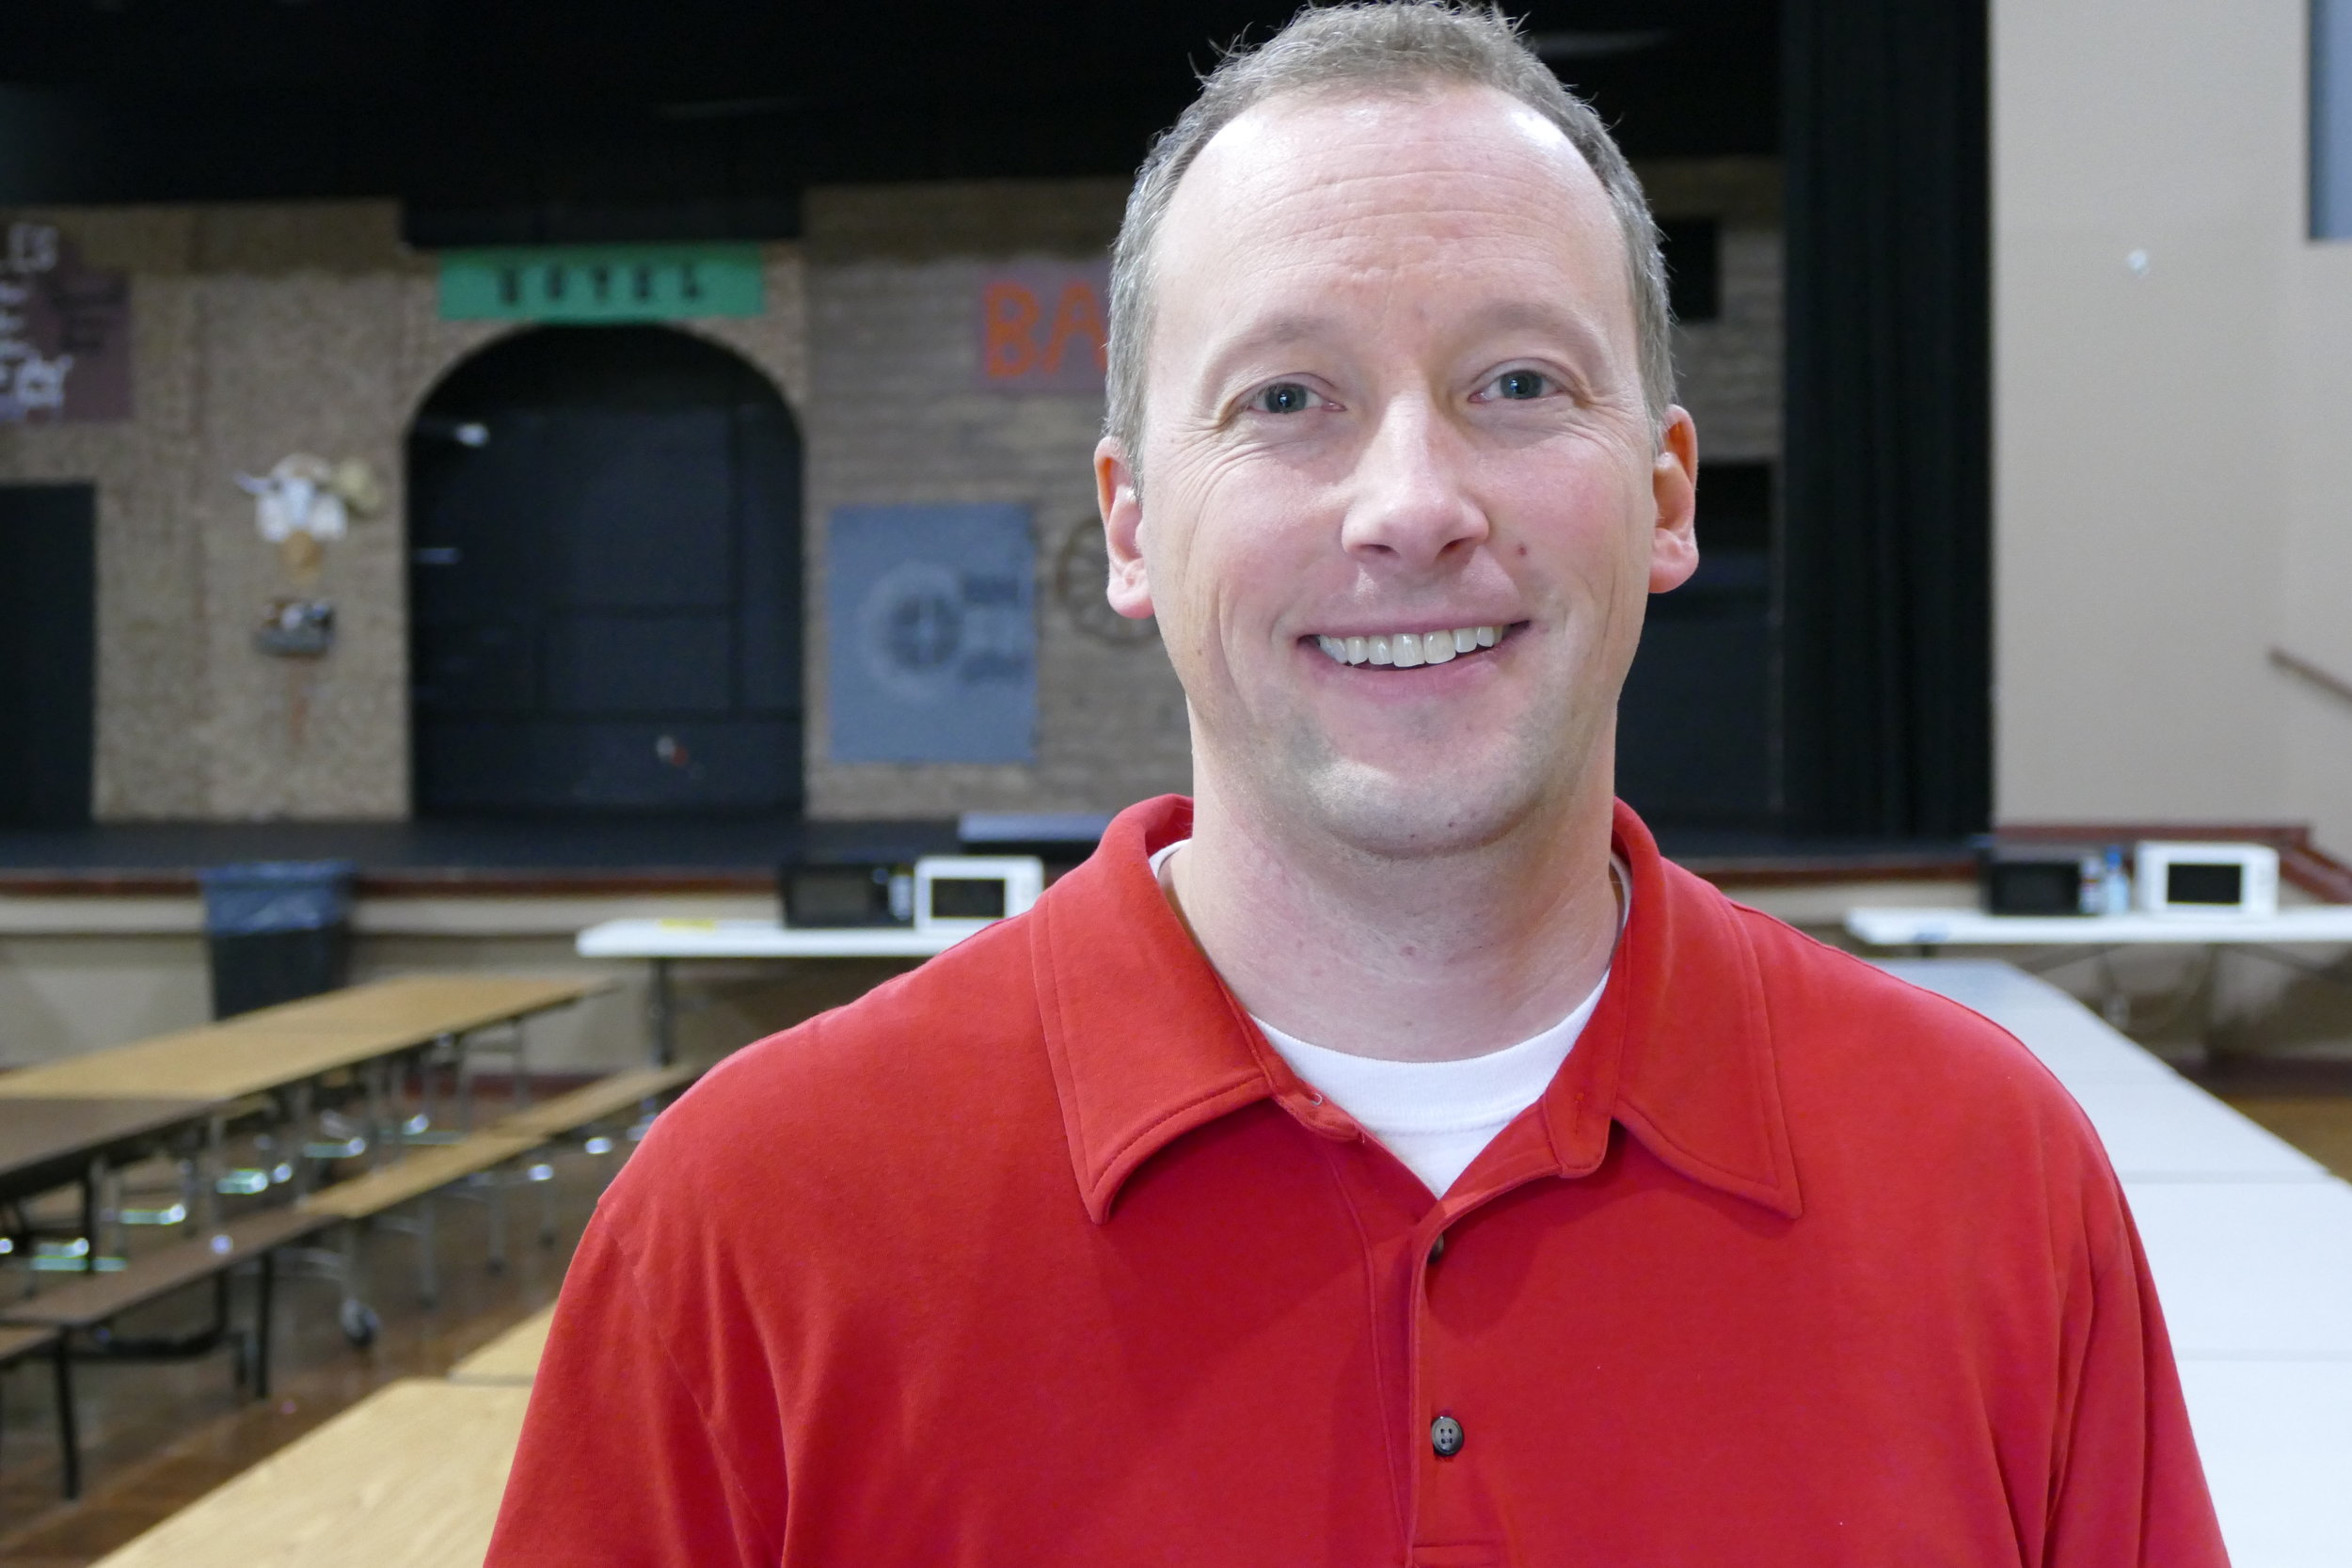 Kevin Jackson , moderator of GCA's mock election, served as poll monitor during Tuesday's election.